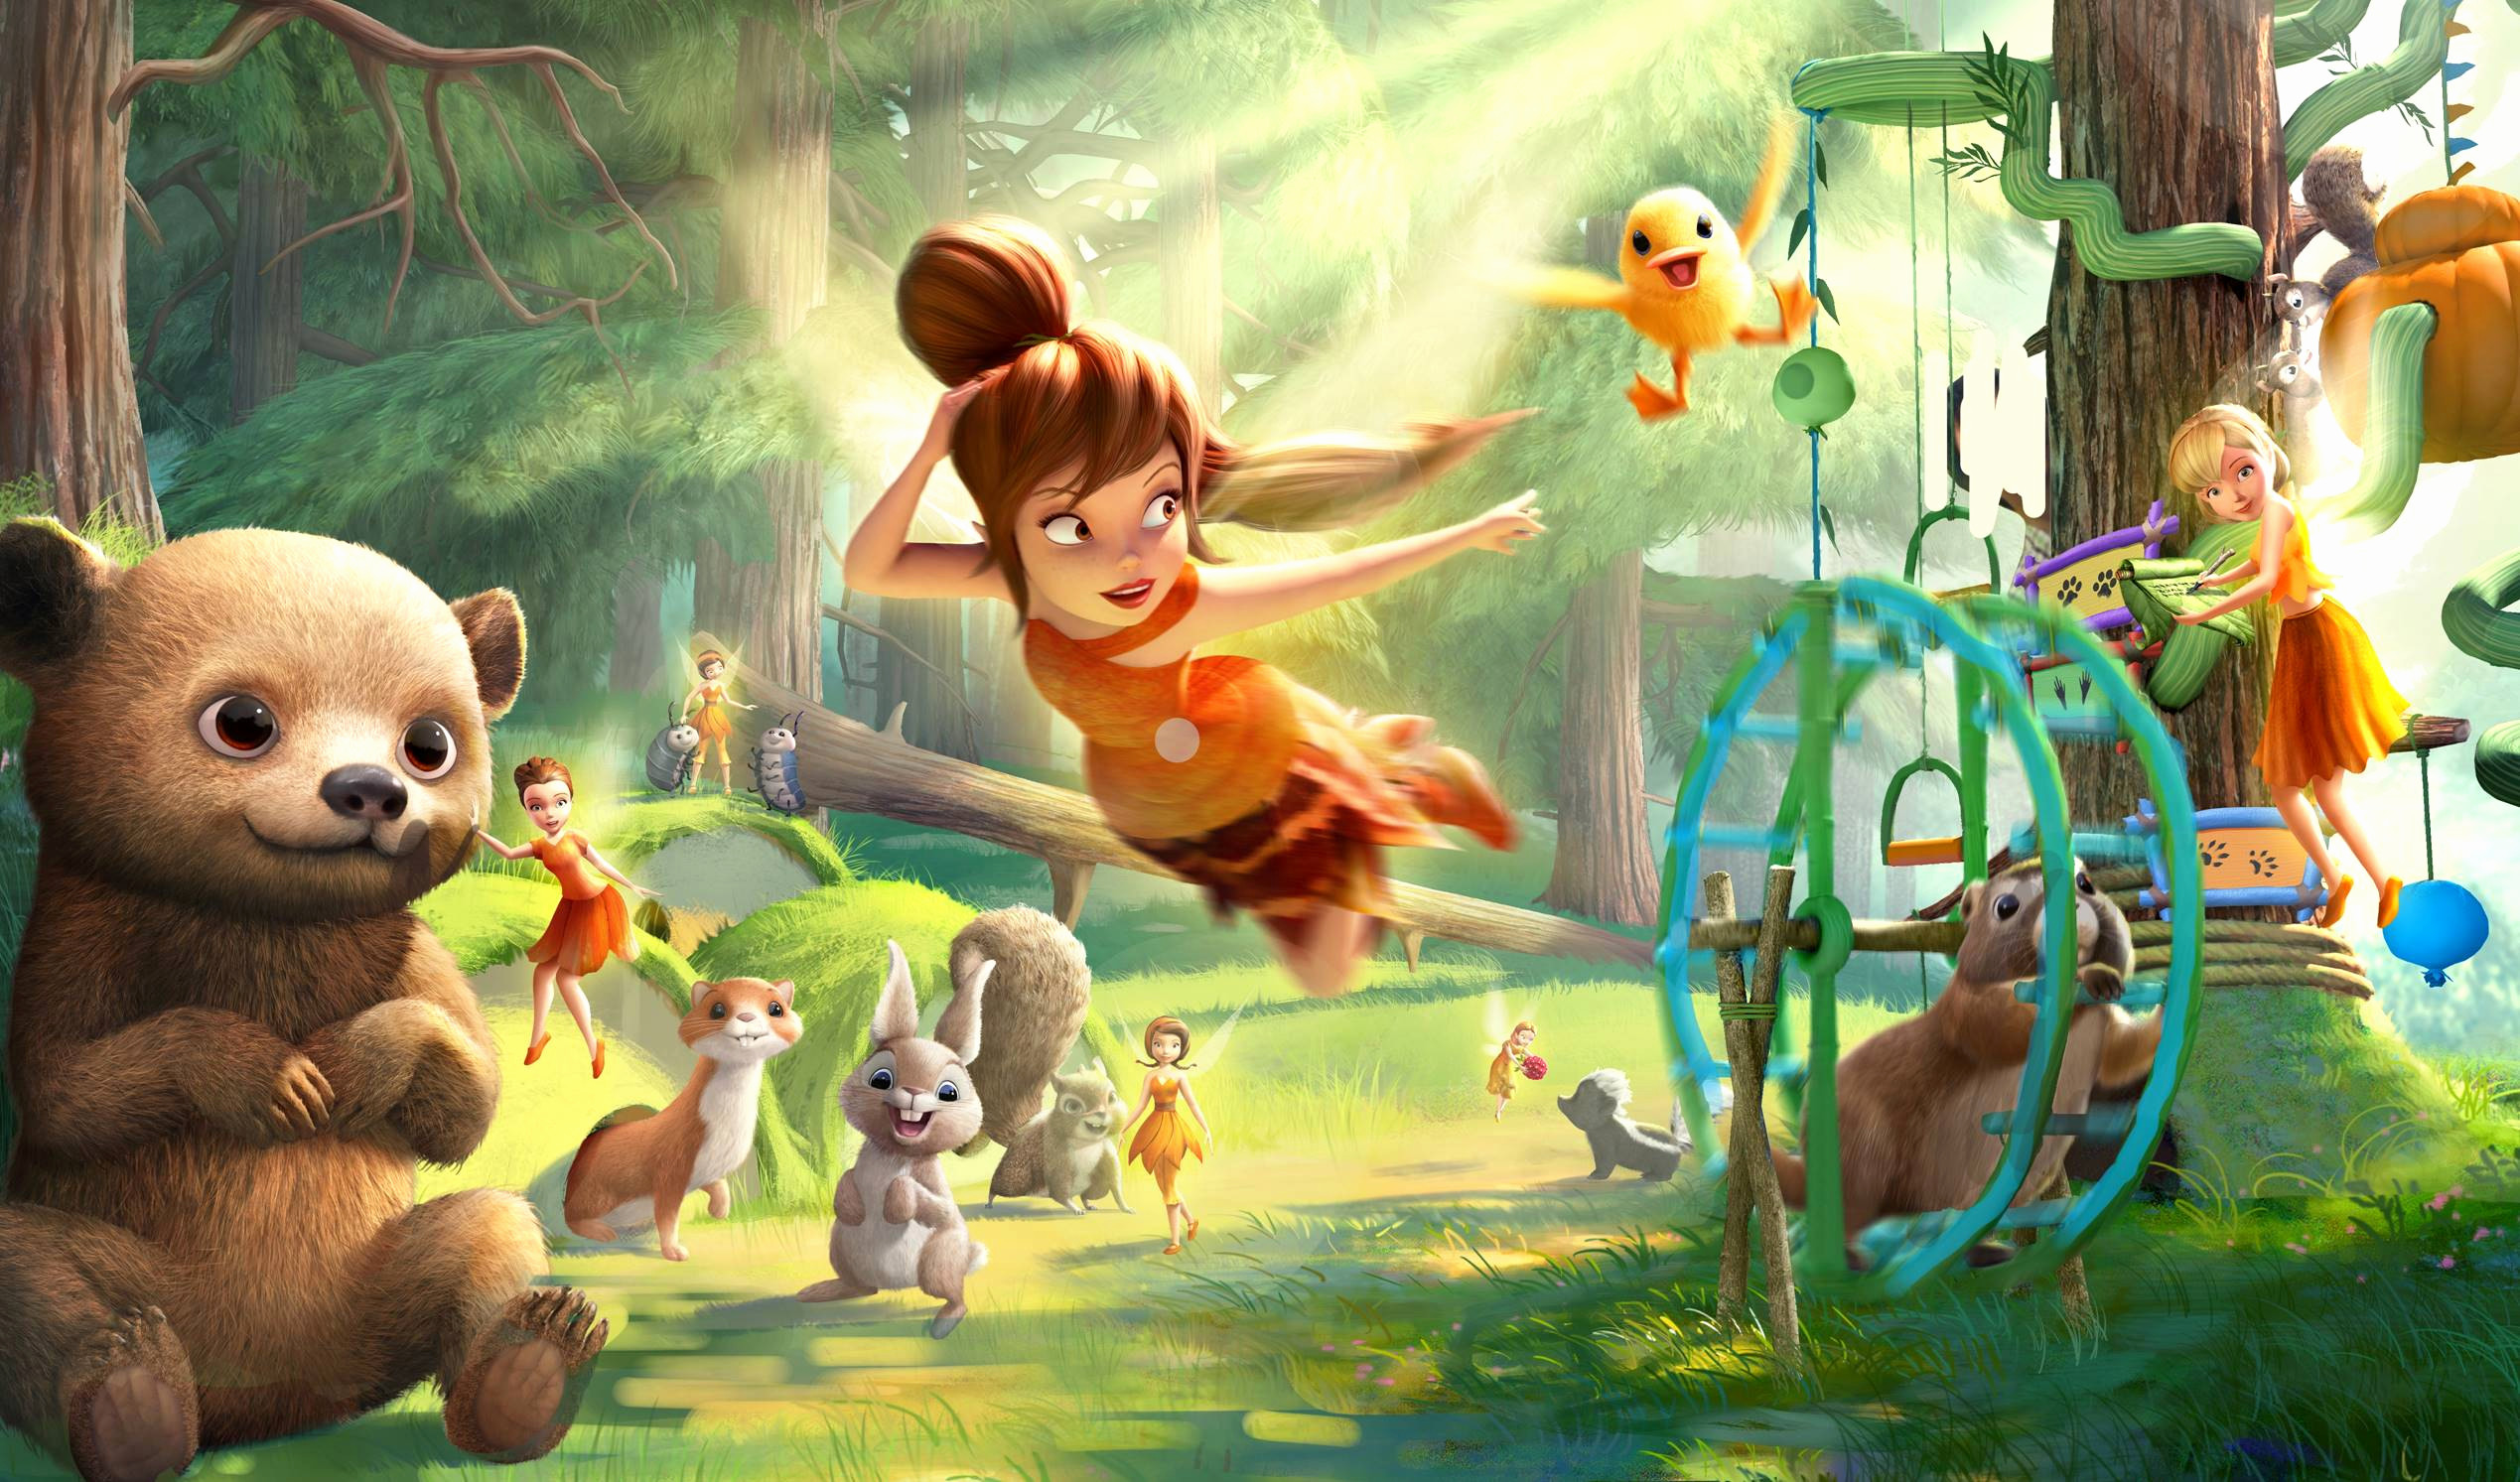 Res: 2538x1493, Tinkerbell Wallpaper Fresh Tinker Bell and the Legend the Neverbeast Wallpapers  Movie Hq